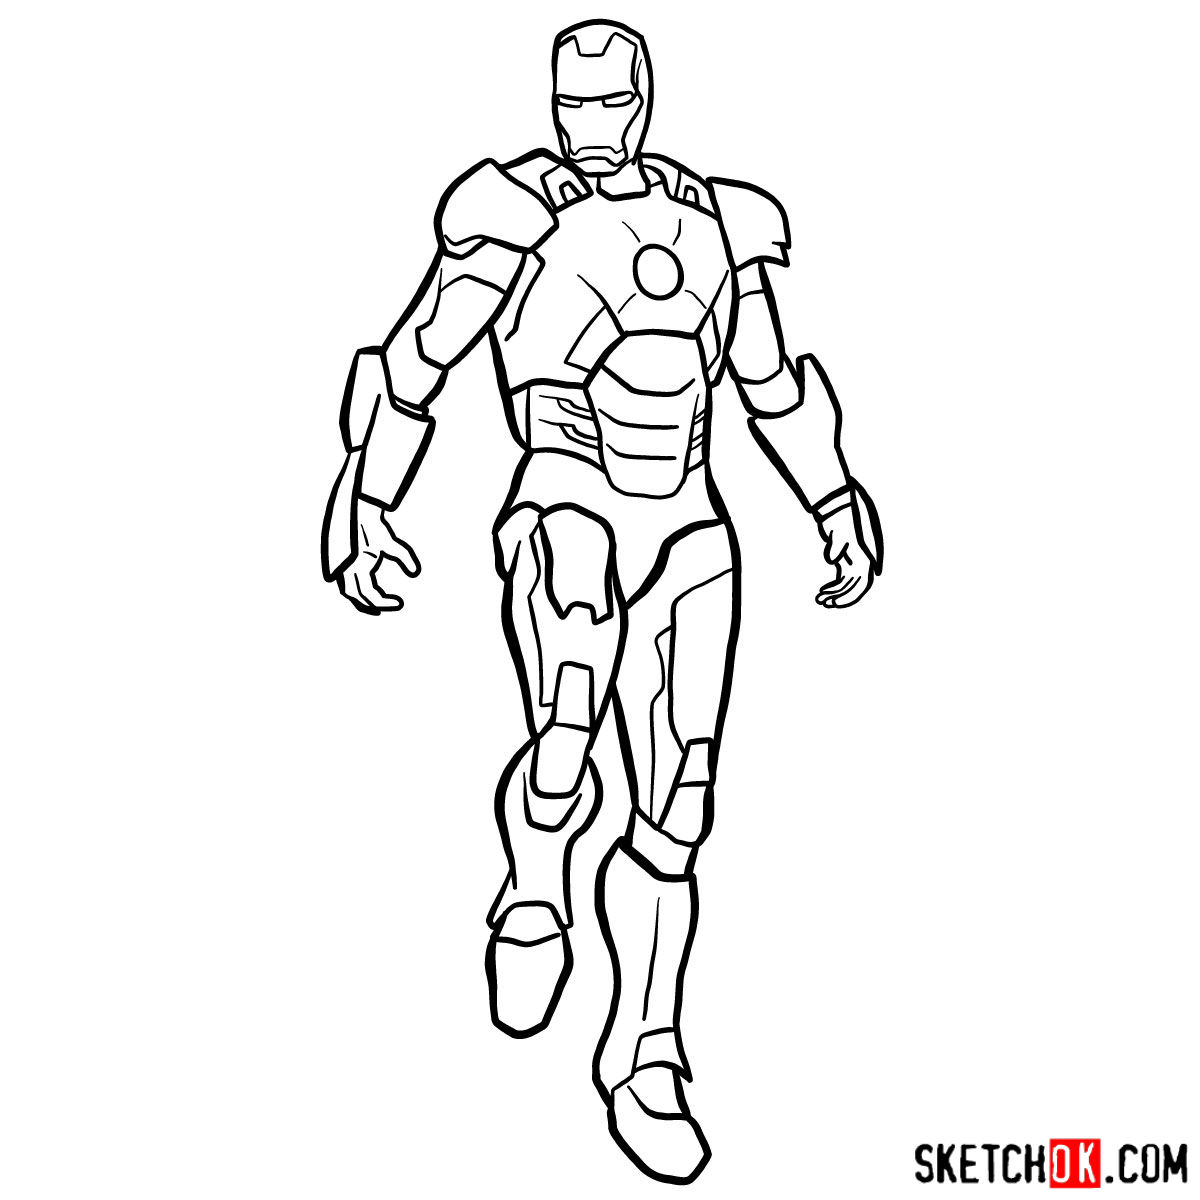 how to draw ironman step by step easy iron man drawing at getdrawings free download draw to ironman by step how step